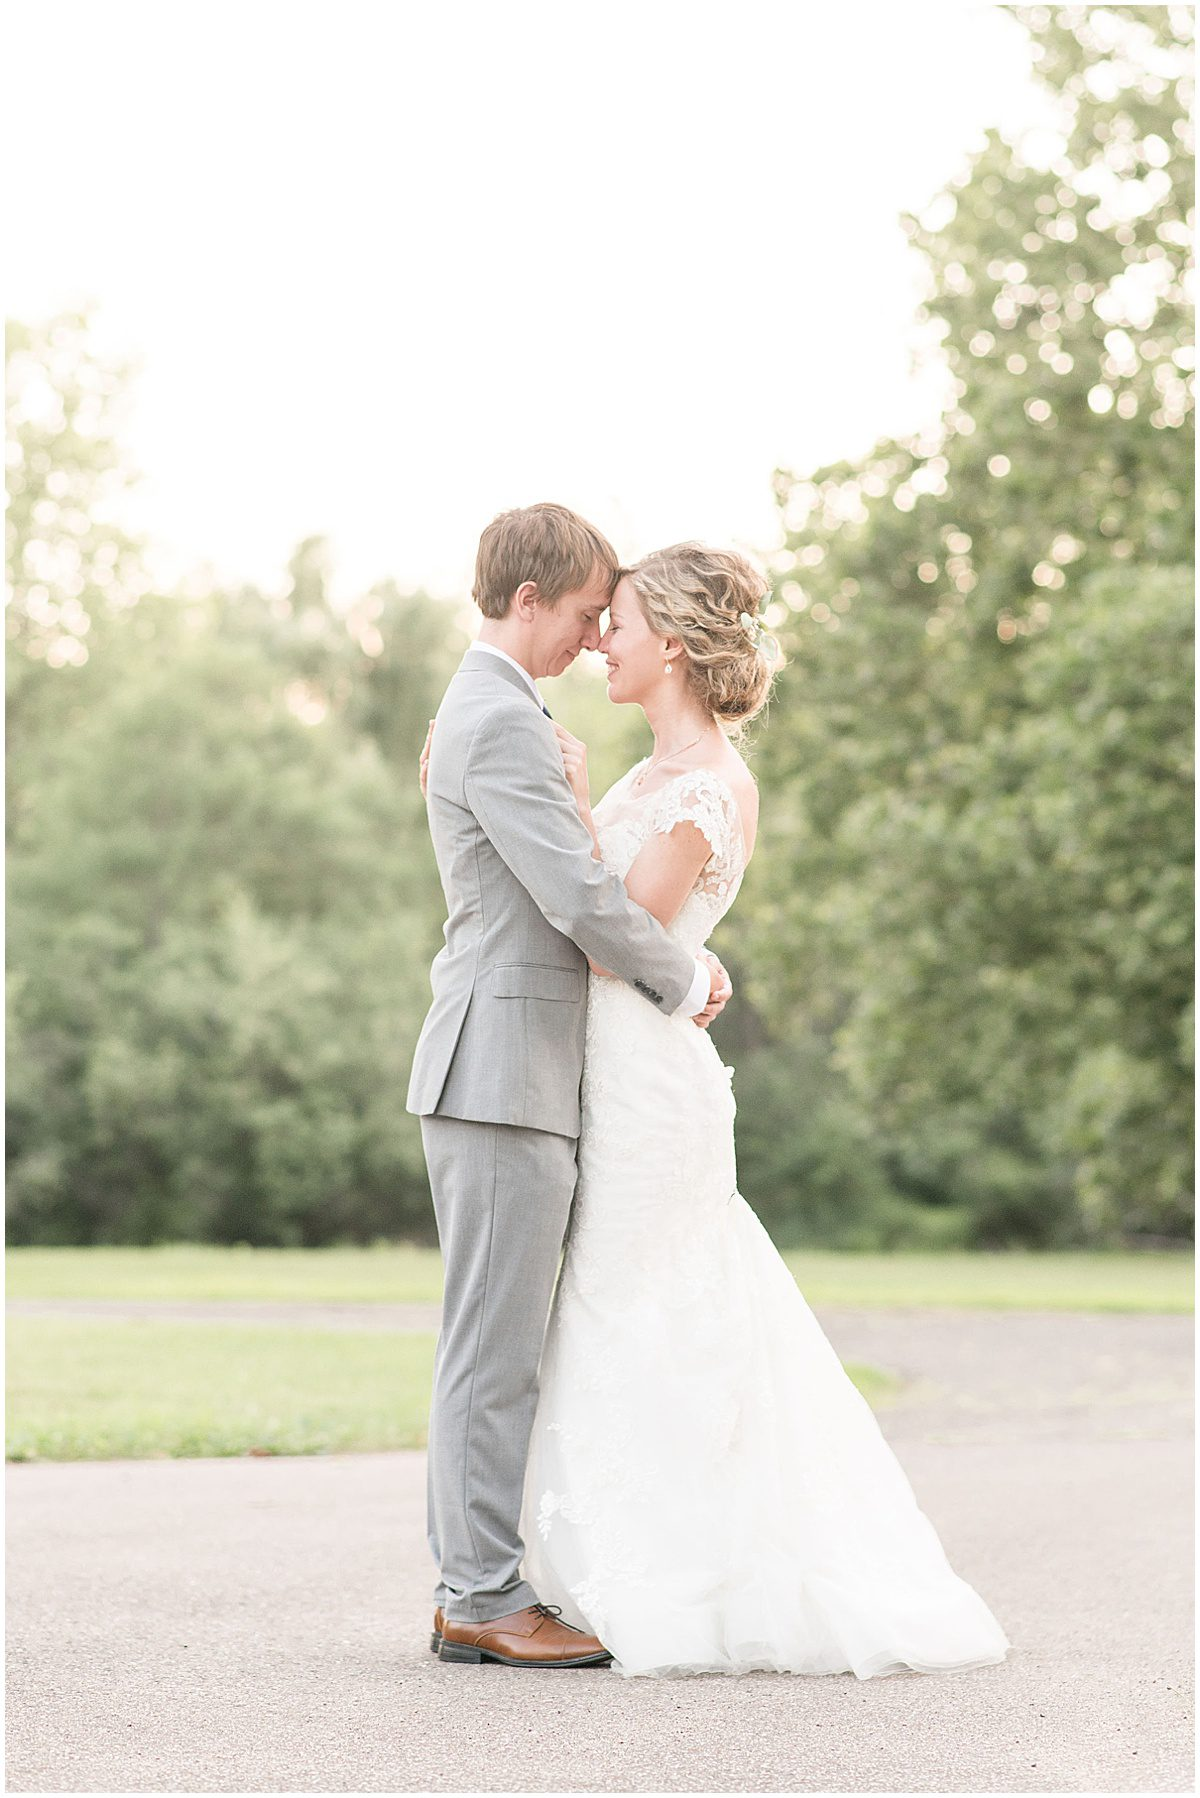 Just married photos after wedding at The Matterhorn in Elkhart, Indiana by Victoria Rayburn Photography